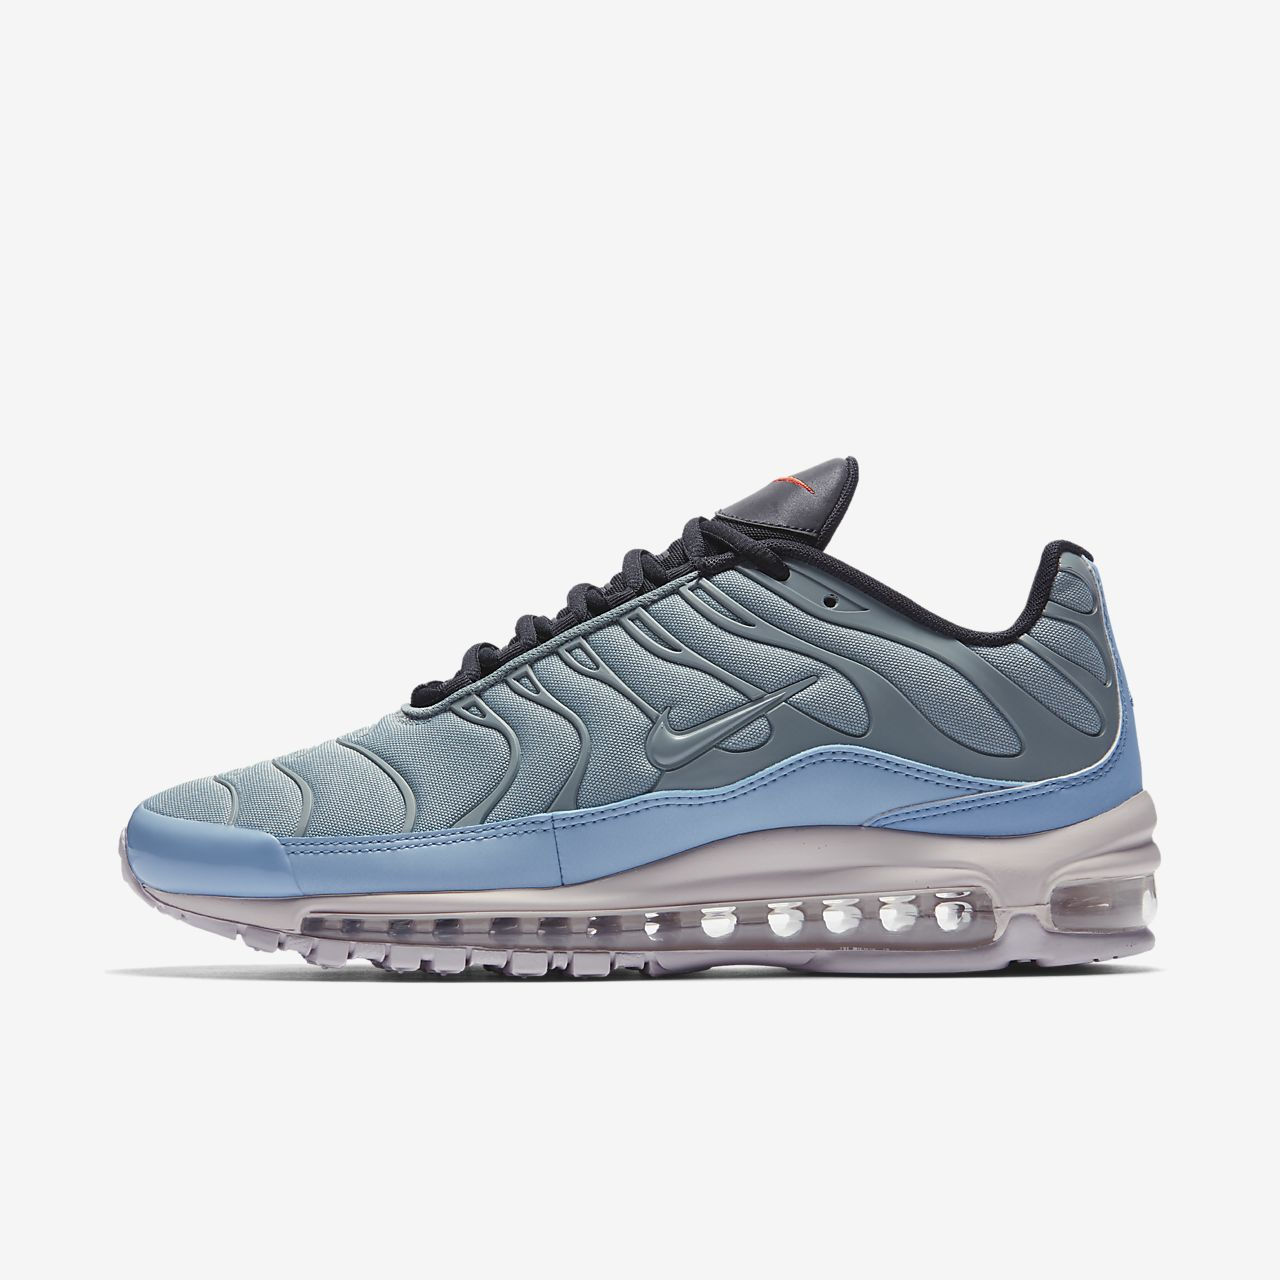 Chaussure Nike Air Max 97 Plus pour Homme